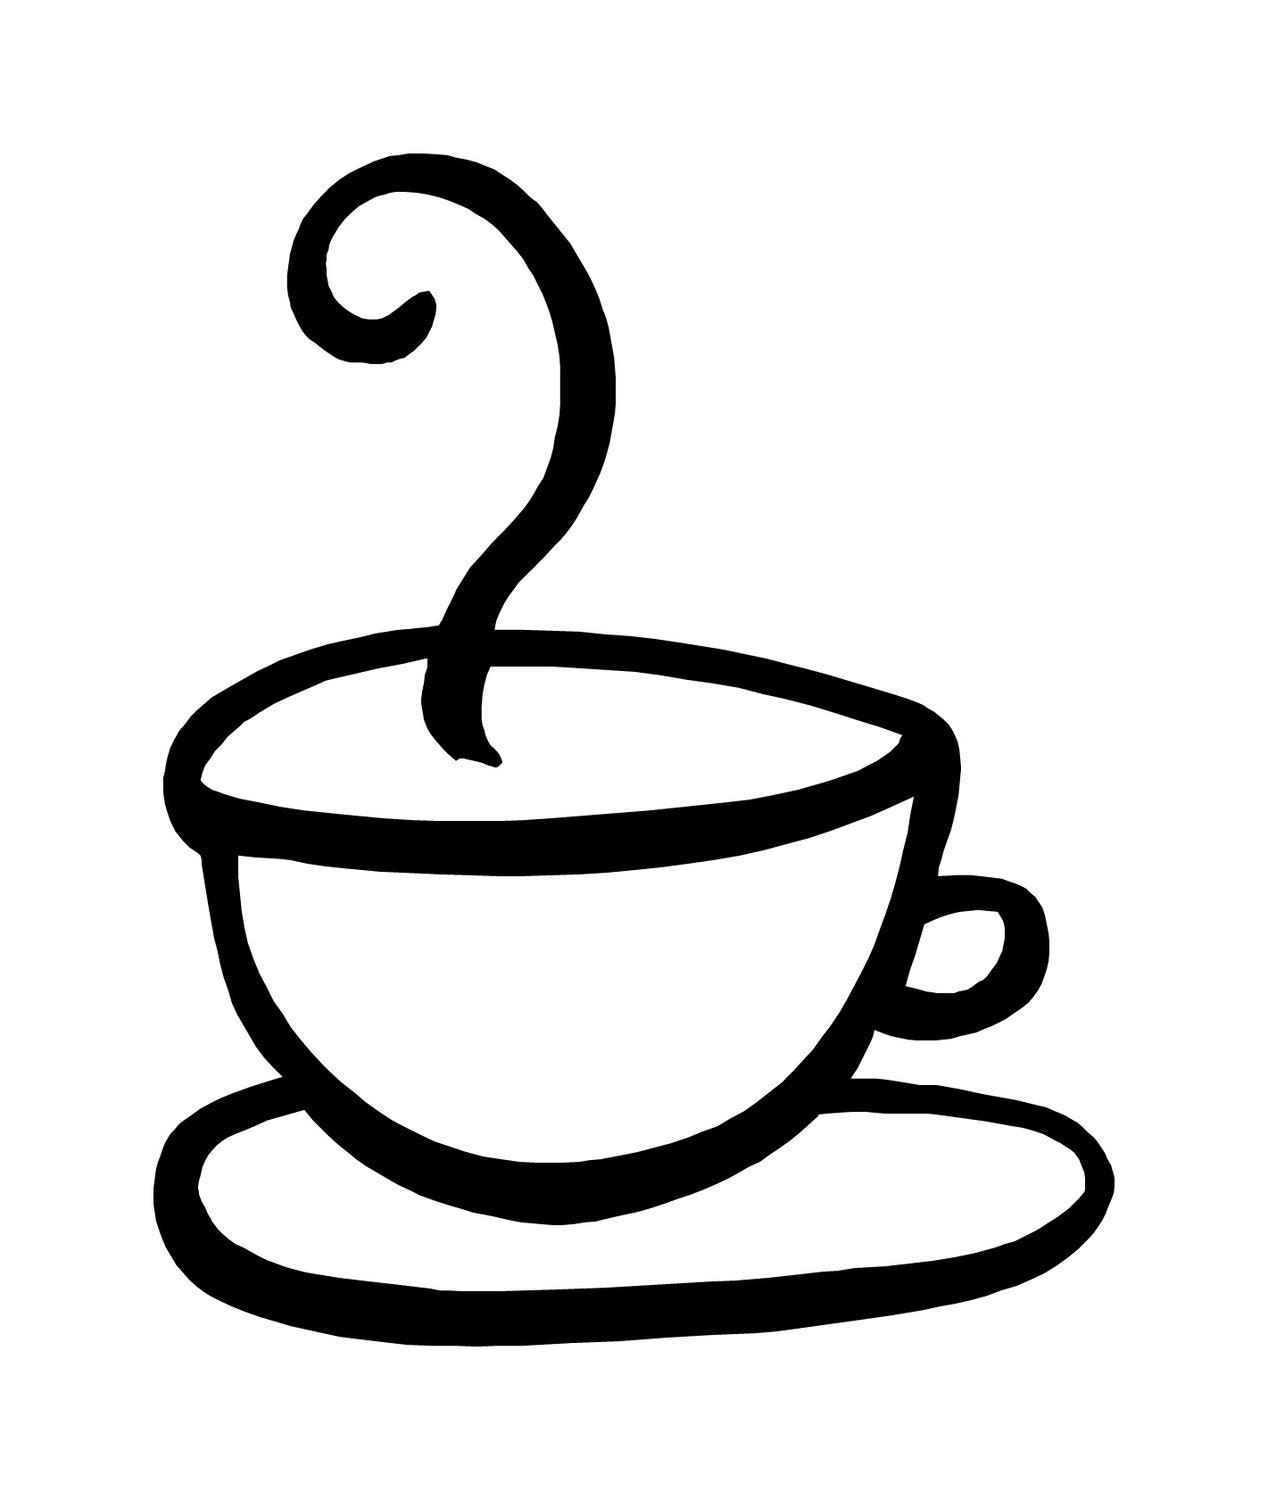 Coffee Cup and Saucer Decal